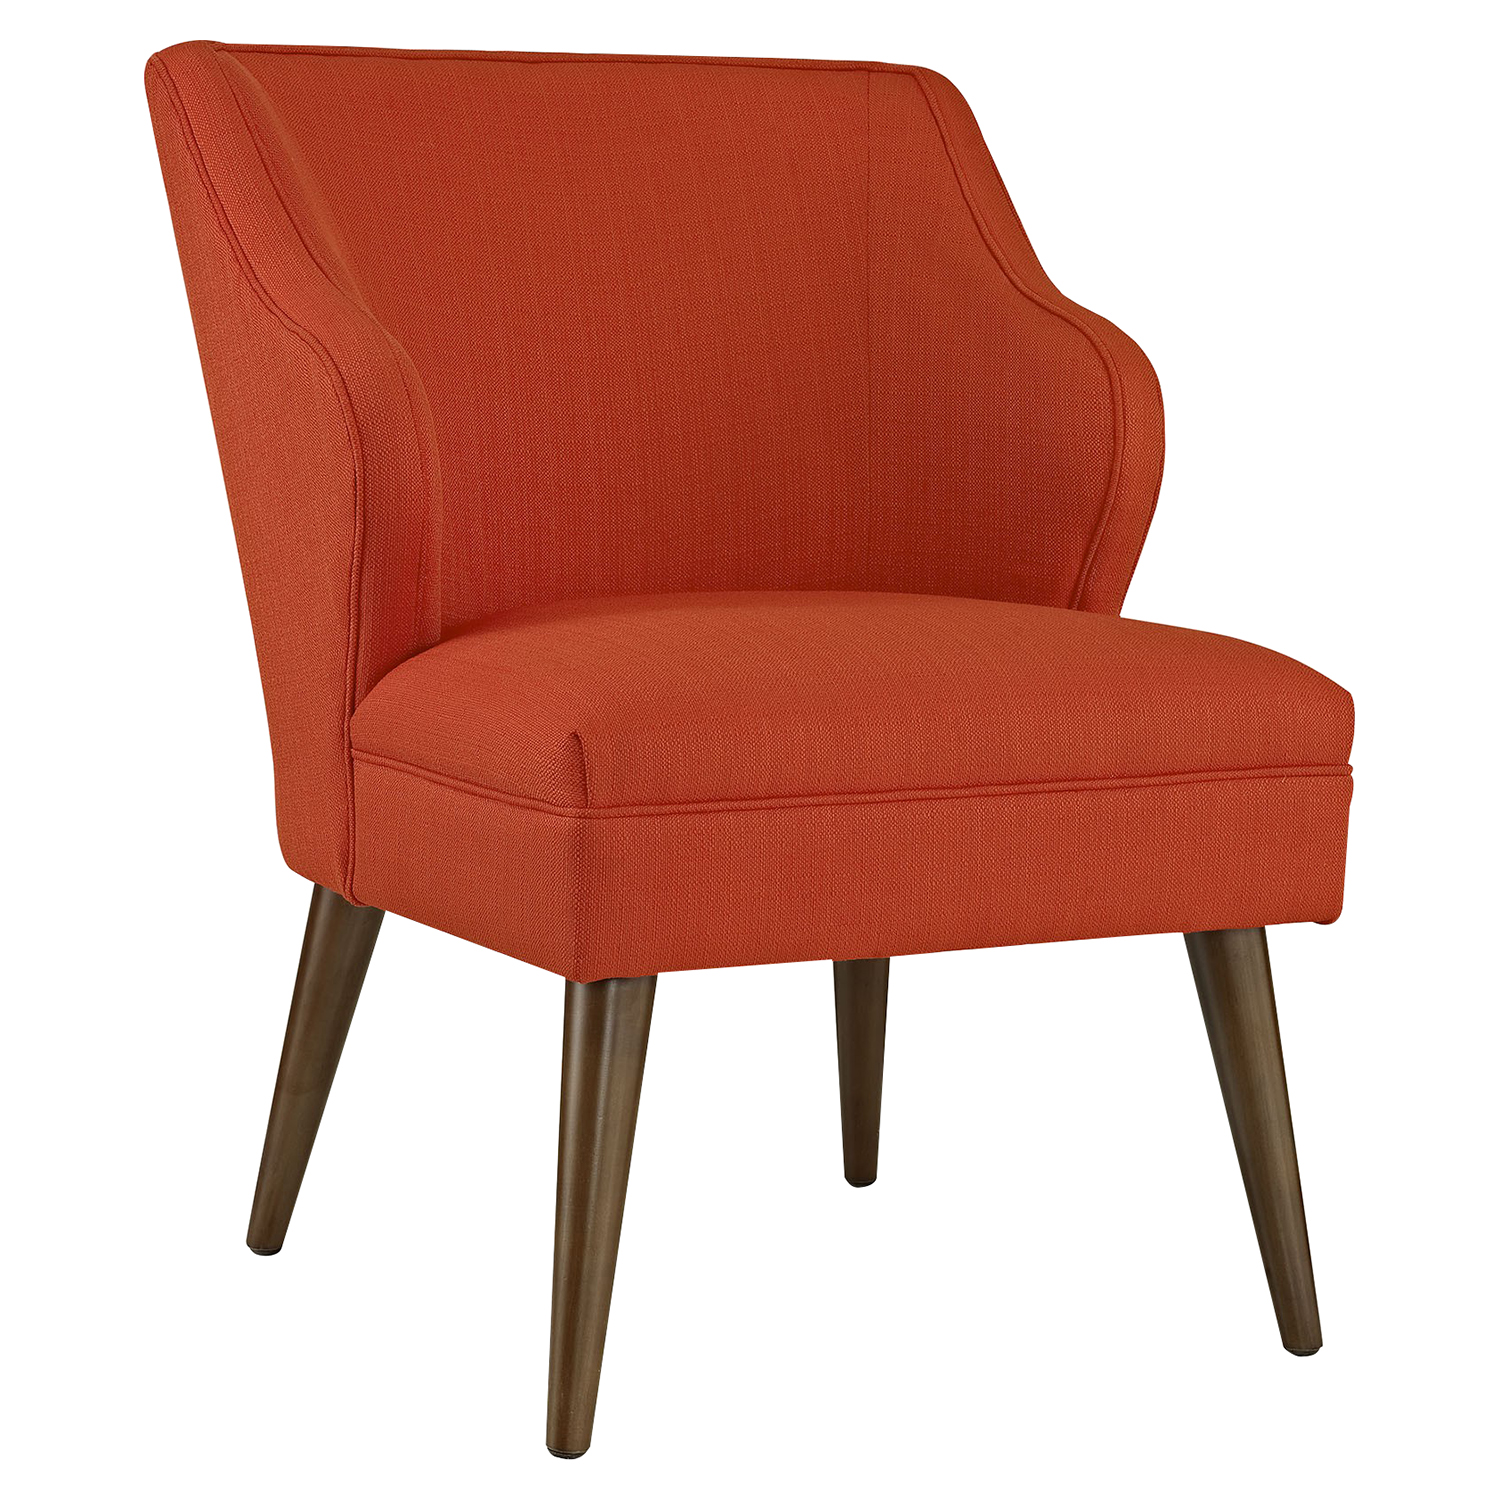 Swell Fabric Armchair - EEI-2148